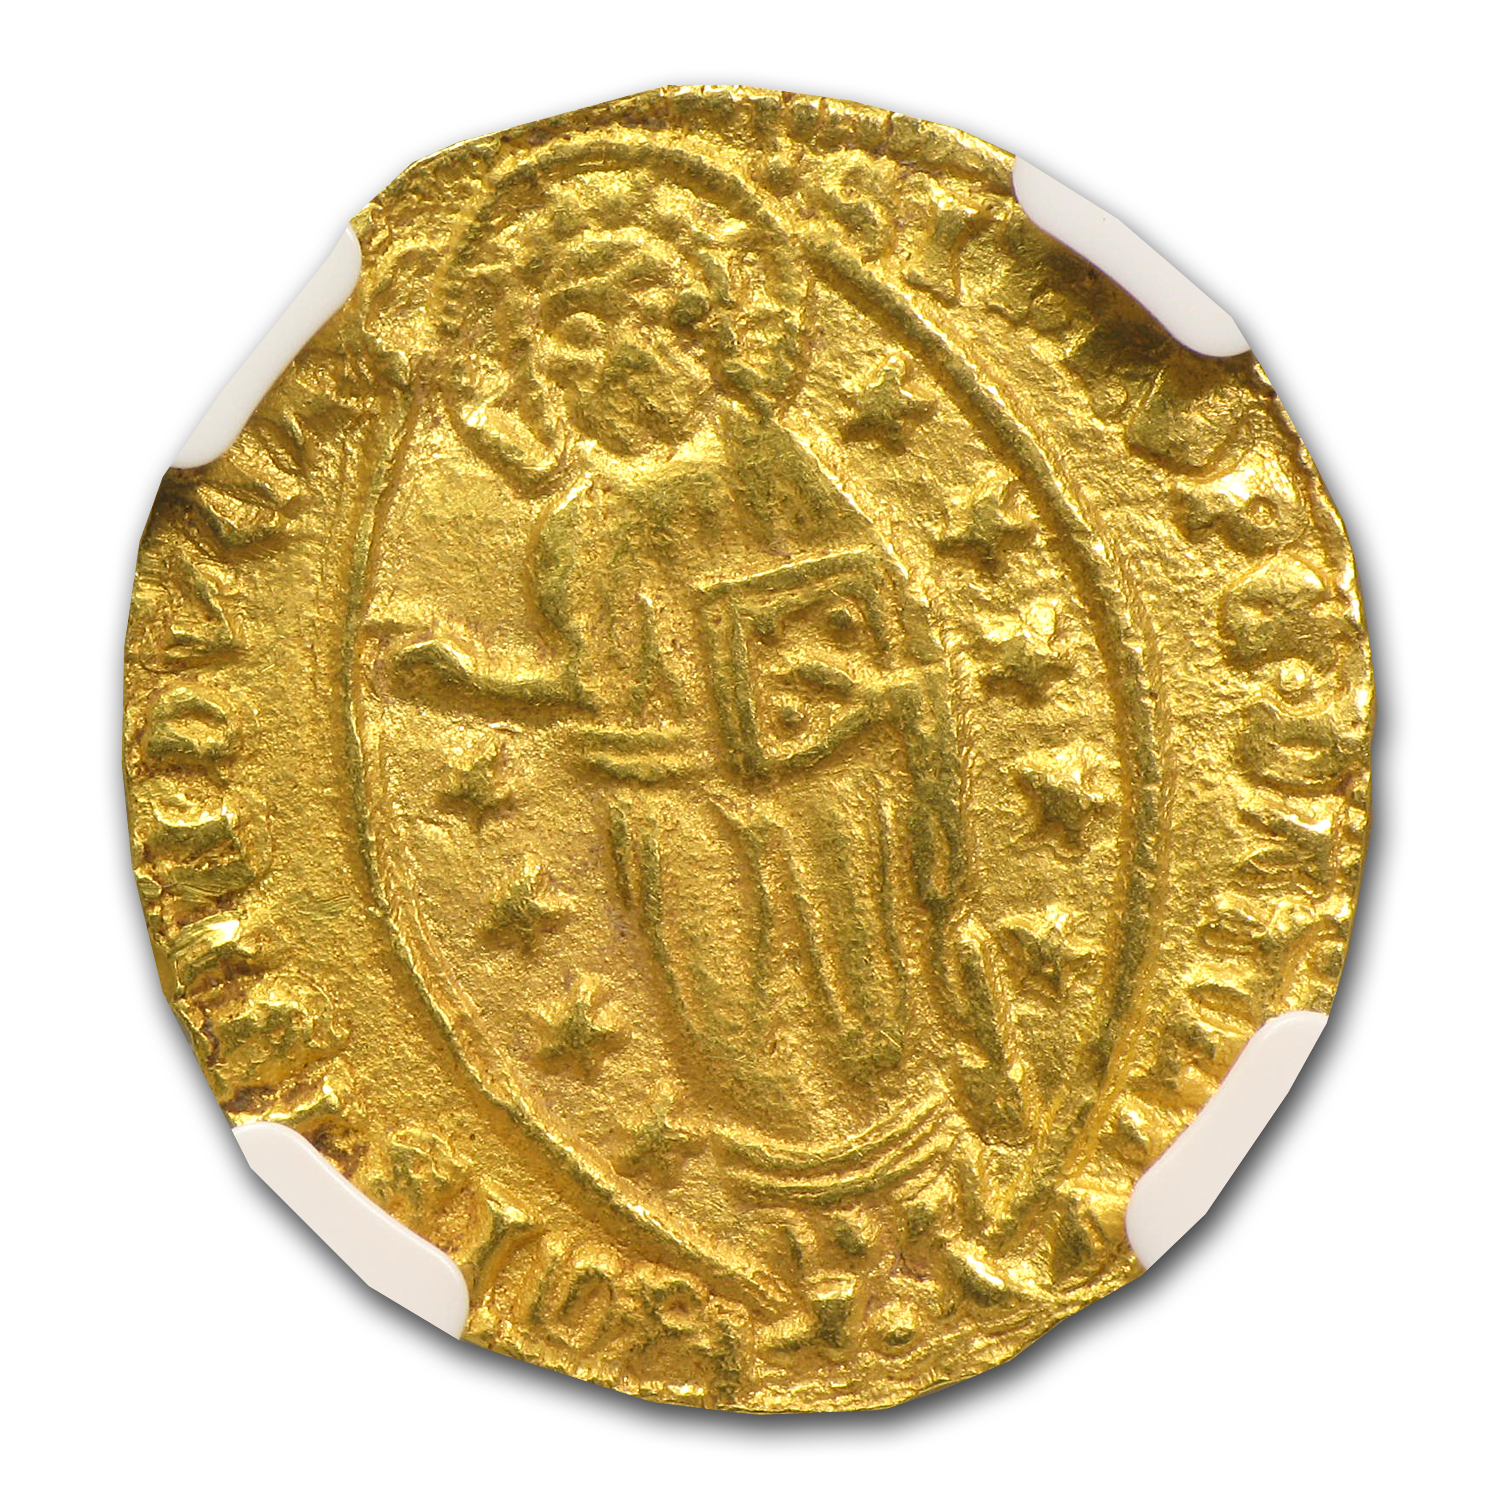 Greece (Chios) Gold Zecchino (1400-1413AD) NGC MS-61